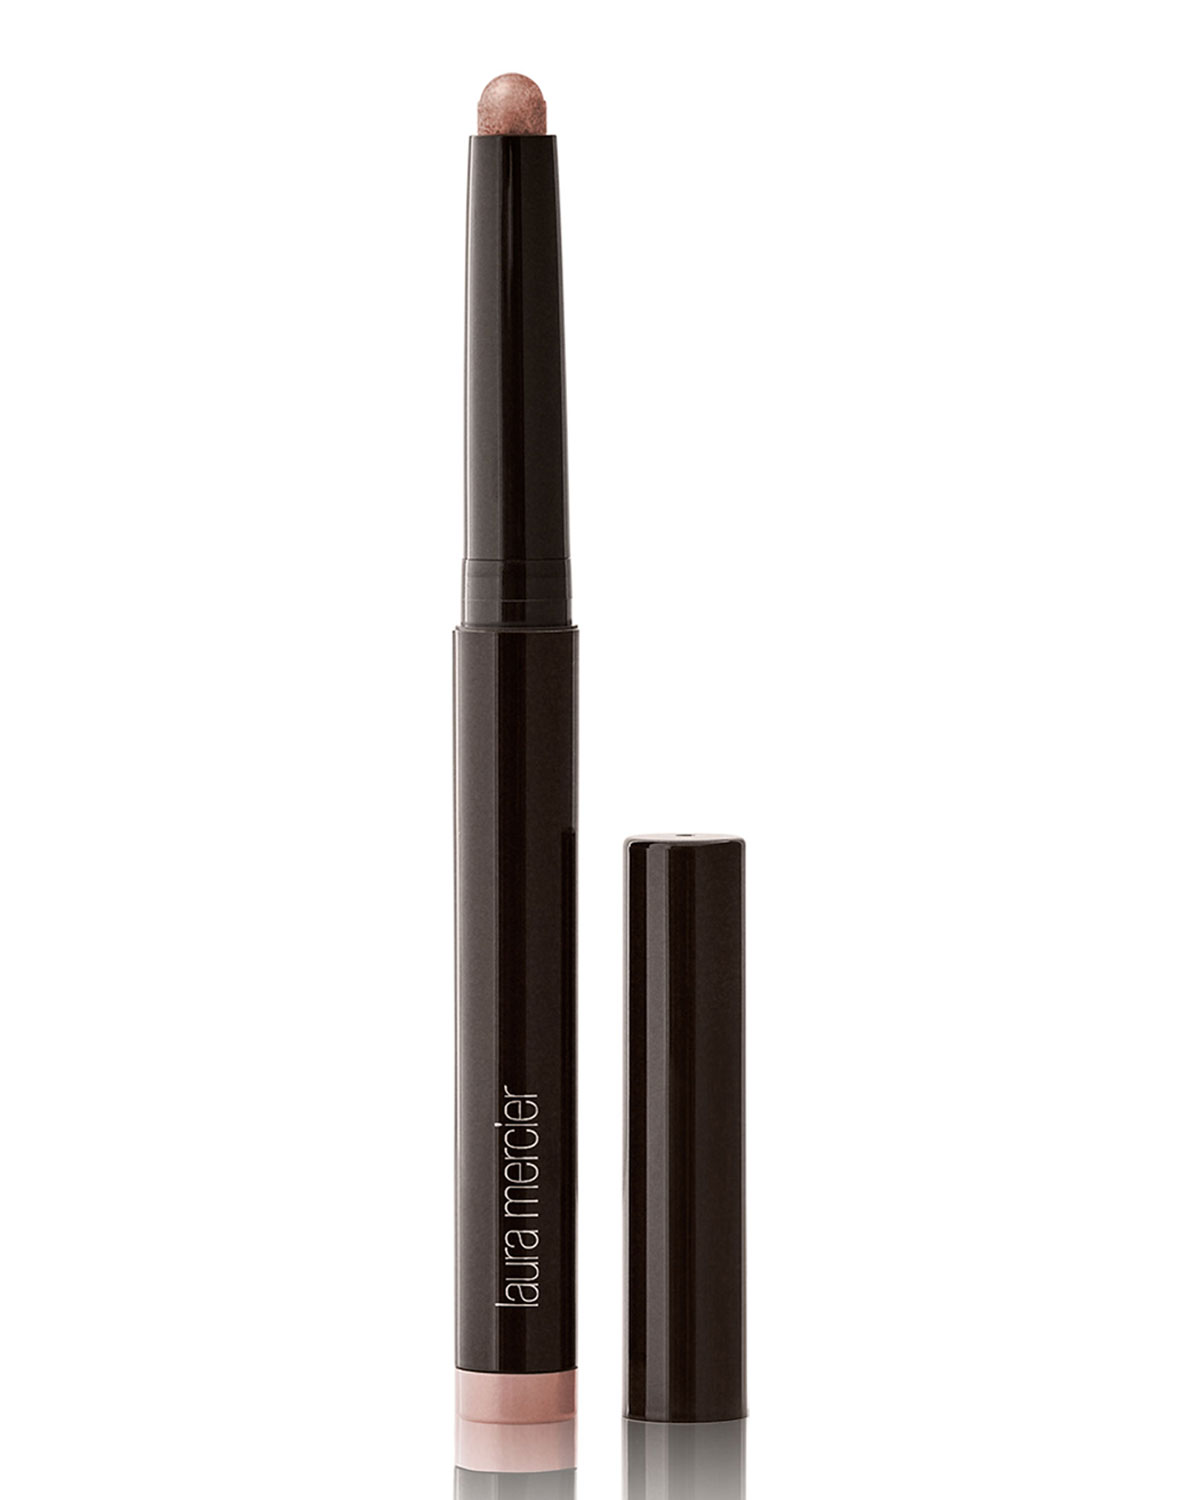 Caviar Stick Eye Color, Blue - Laura Mercier